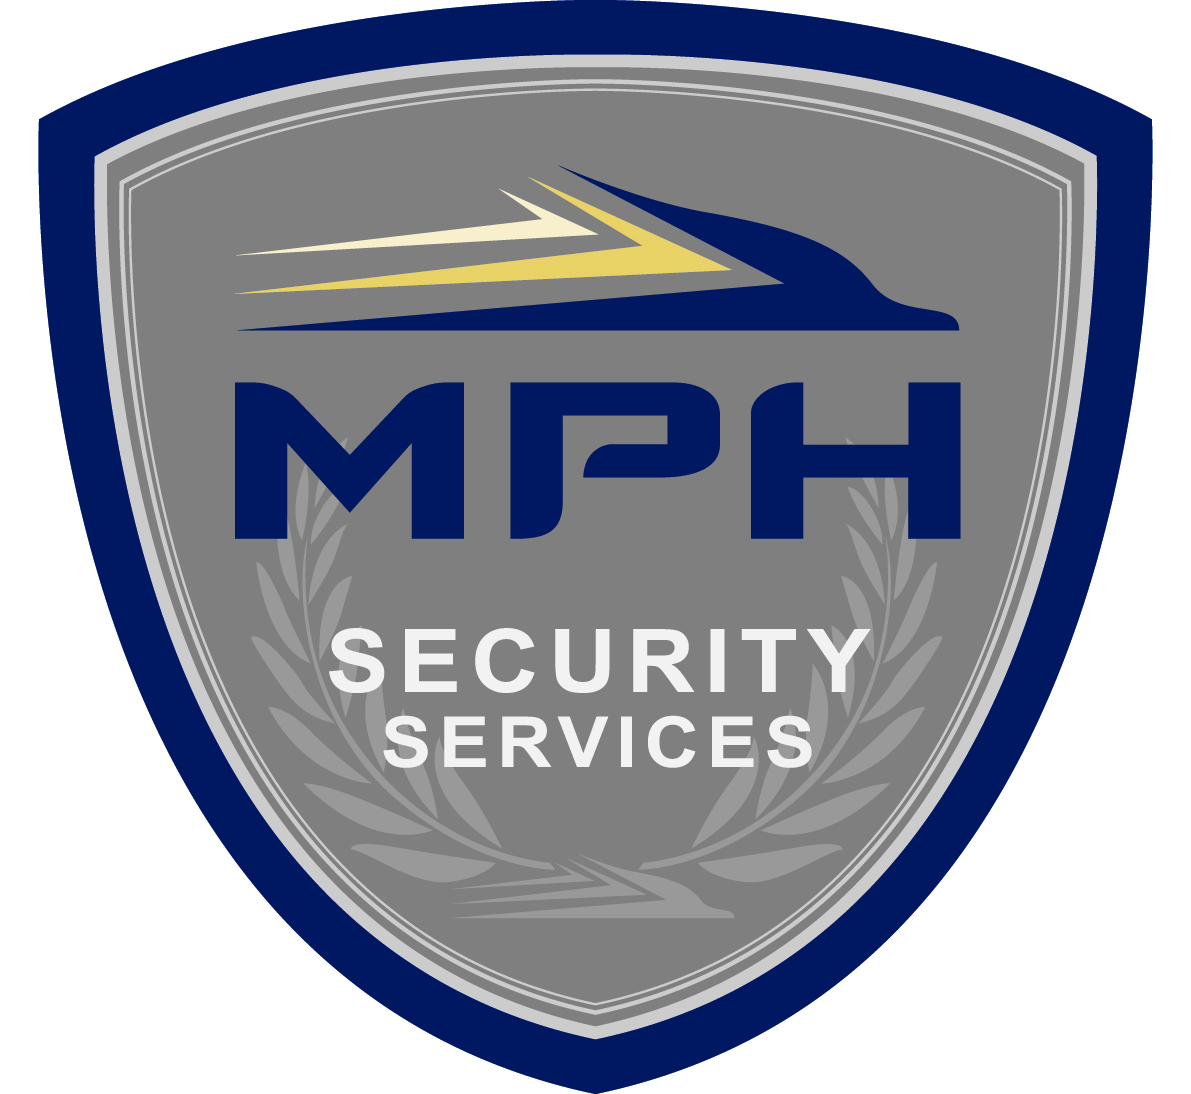 MPHI Security Services